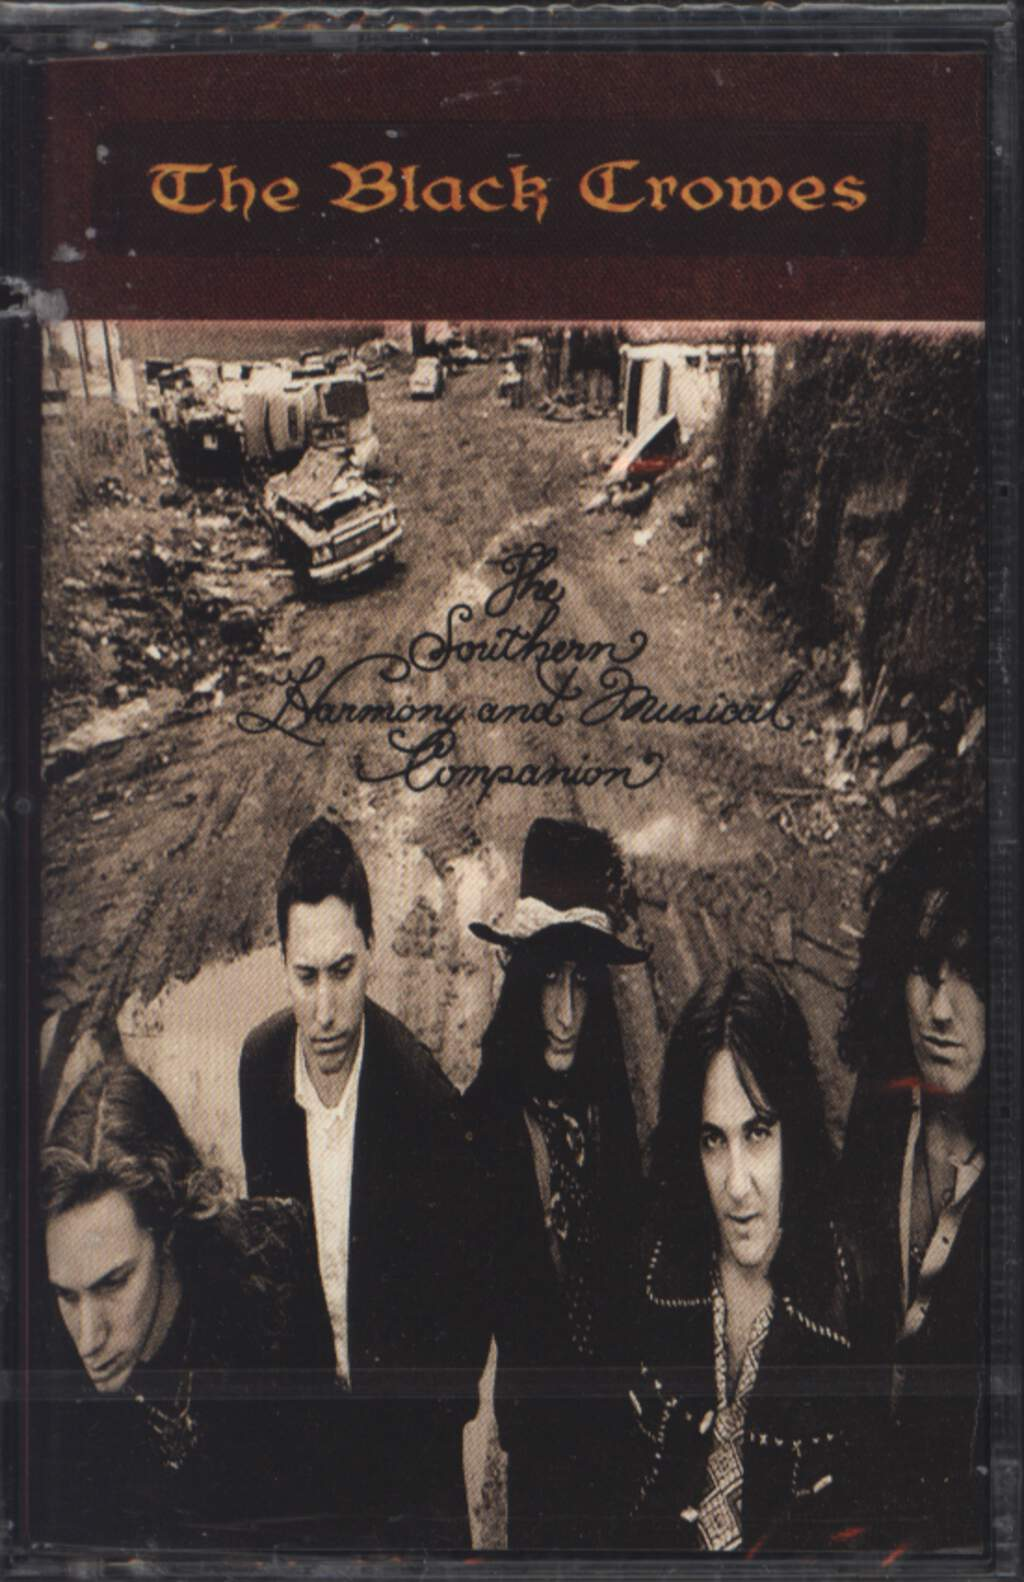 The Black Crowes: The Southern Harmony And Musical Companion, Compact Cassette